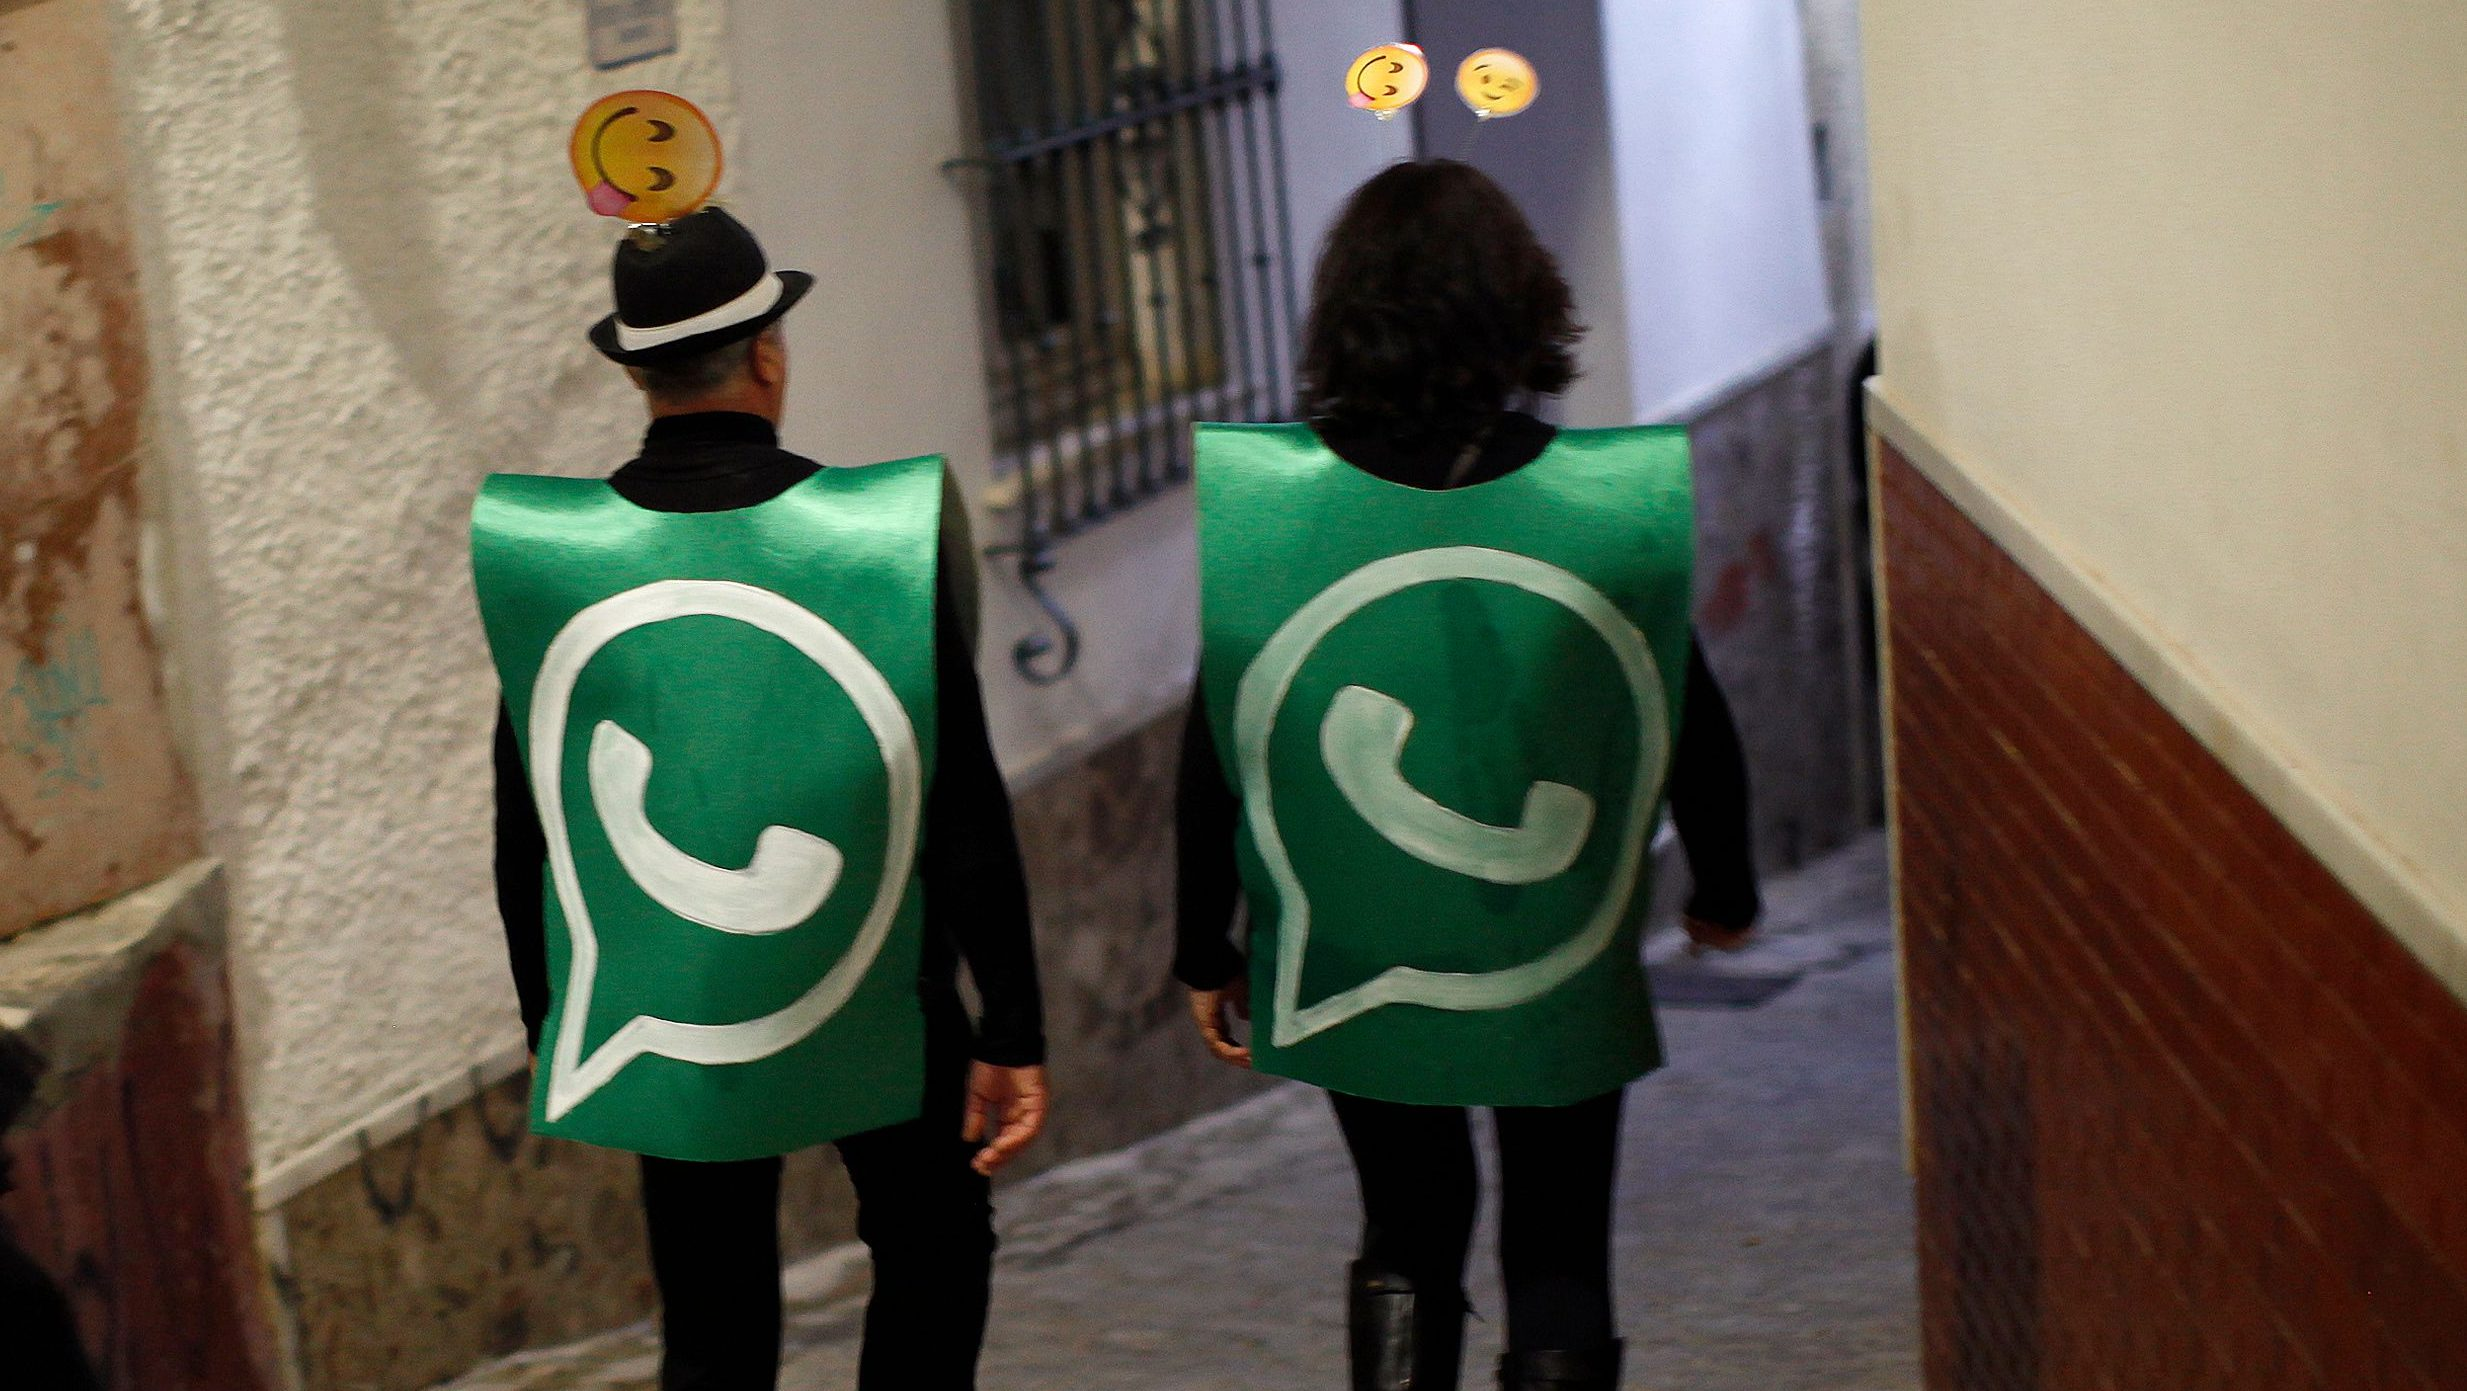 Revellers dressed up as dancers of 'Black Swan' check their mobile phones next to revellers dressed up as a Whatsapp logo as they take part in New Year's celebrations in Coin, near Malaga, southern Spain, early January 1, 2015. Villagers and revellers dressed up in funny costumes to take part in the New Year's celebration. REUTERS/Jon Nazca (SPAIN - Tags: SOCIETY ANNIVERSARY TPX IMAGES OF THE DAY) - GM1EB111IWI01